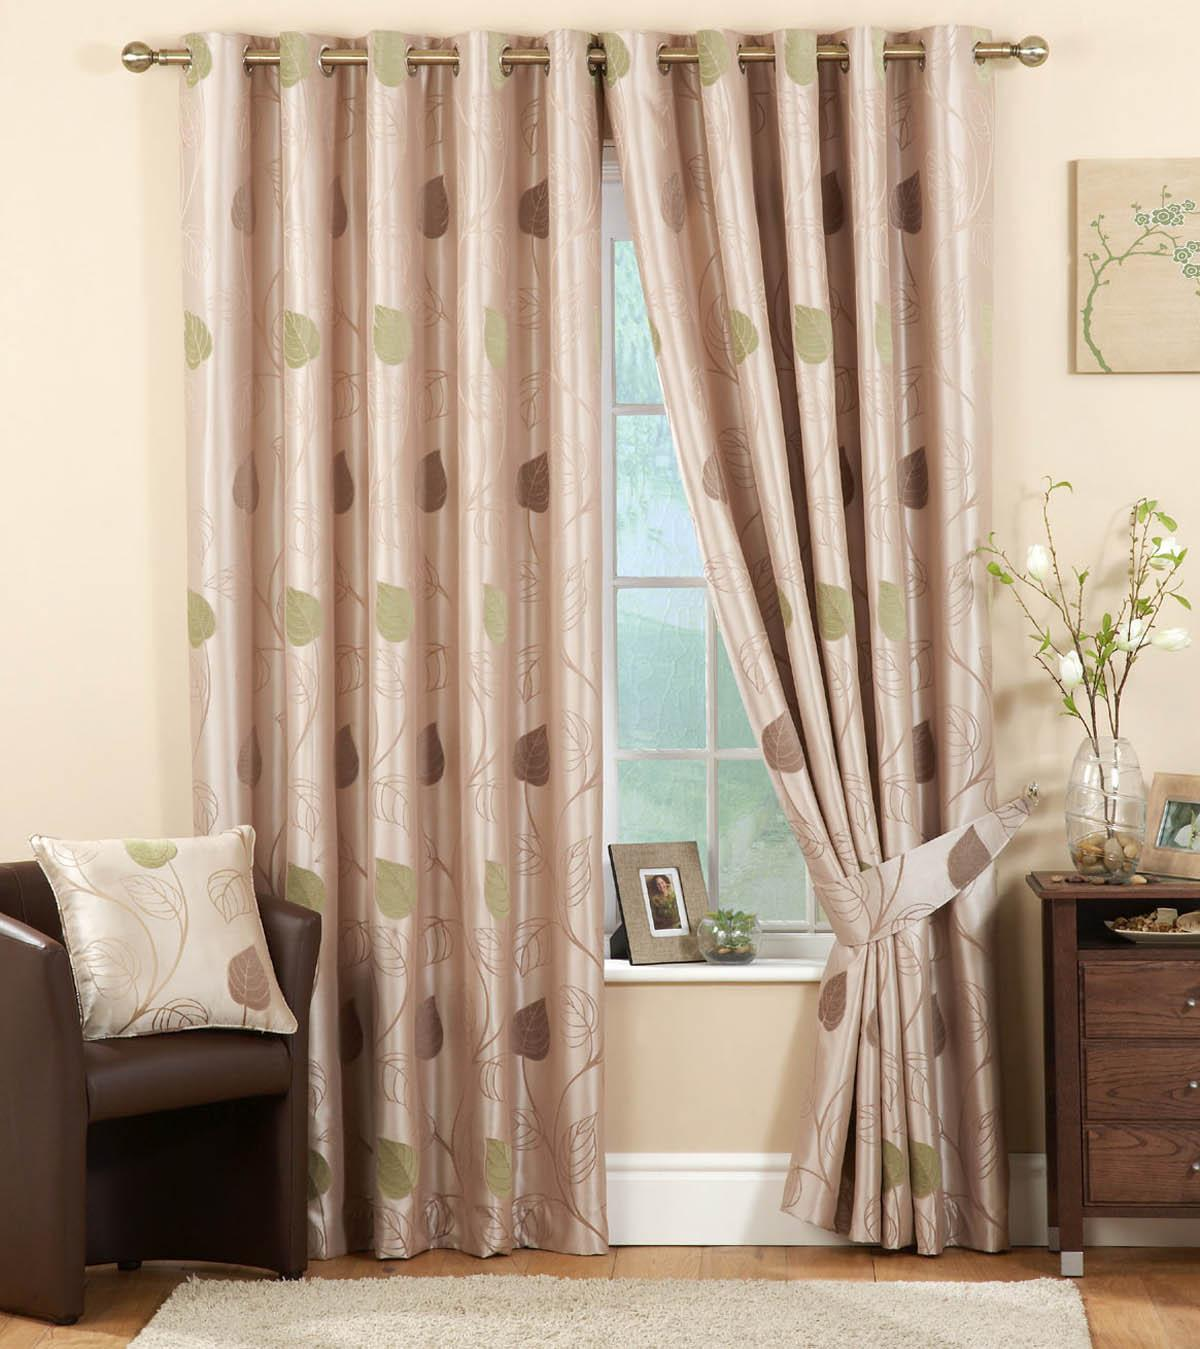 Green eyelet curtains shop for cheap curtains blinds - Green curtain patterns ...